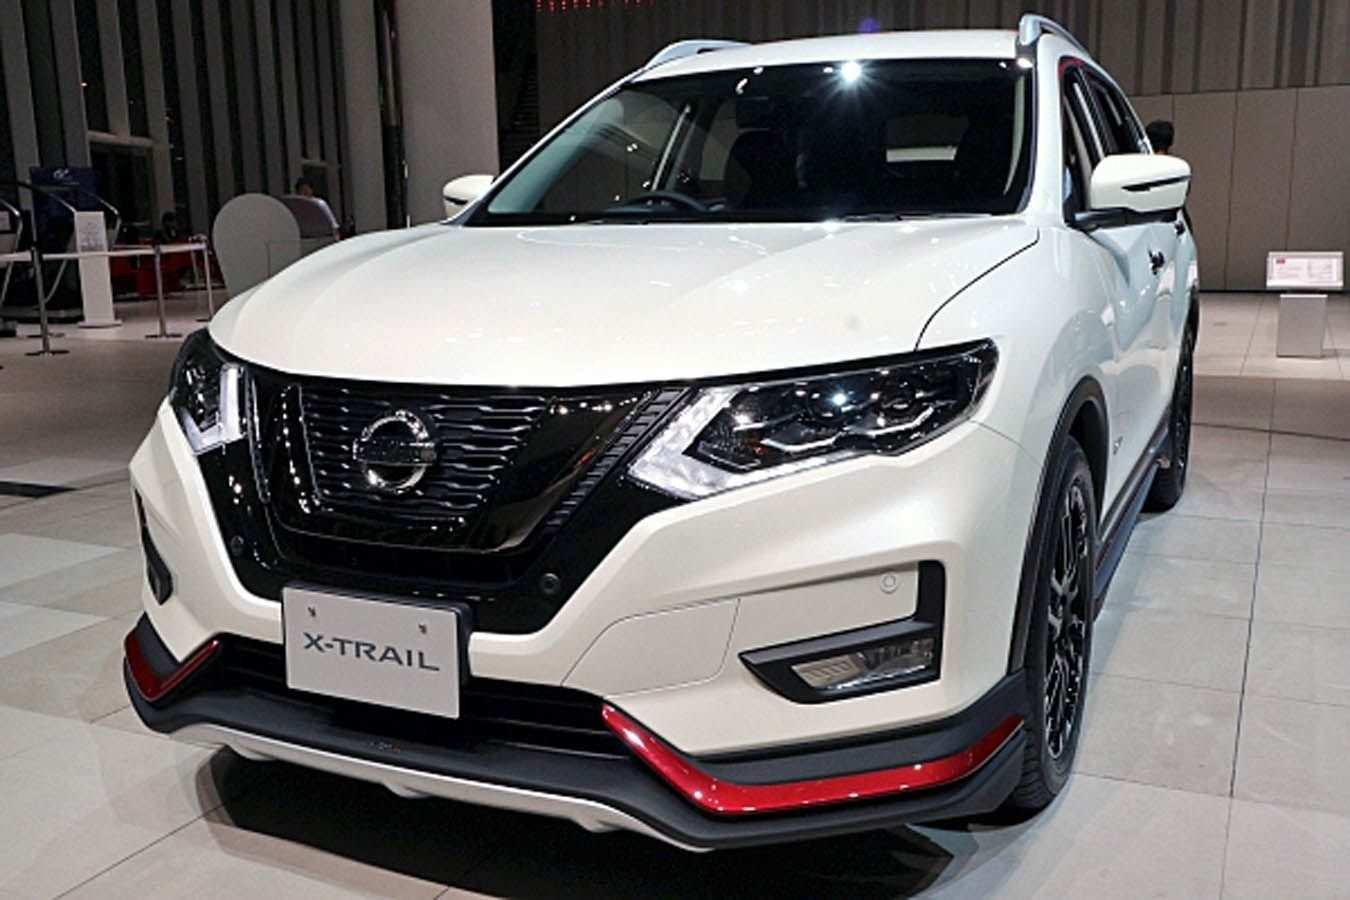 65 The Best Nissan X Trail 2020 Price And Release Date